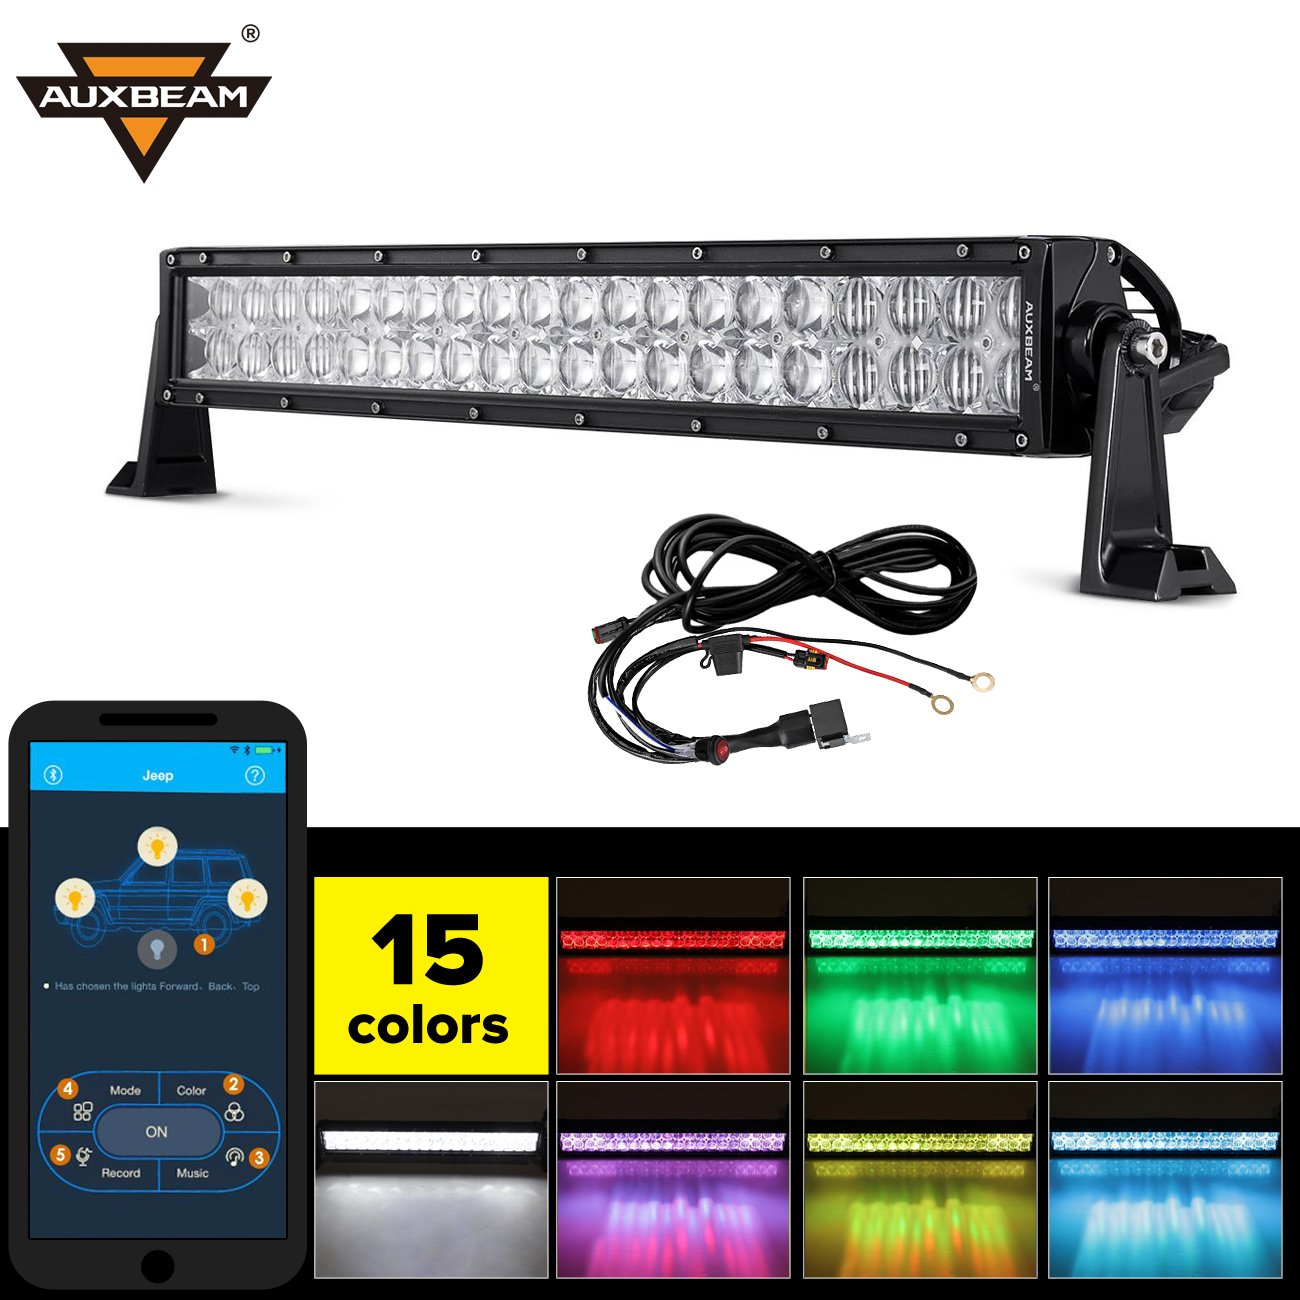 Auxbeam 22 Inch Rgb Led Light Bar Multi Color Details About Spot Flood Work Driving Wiring Button On Off 5d V Series 120w Road 3w Cree Leds Combo Beam With